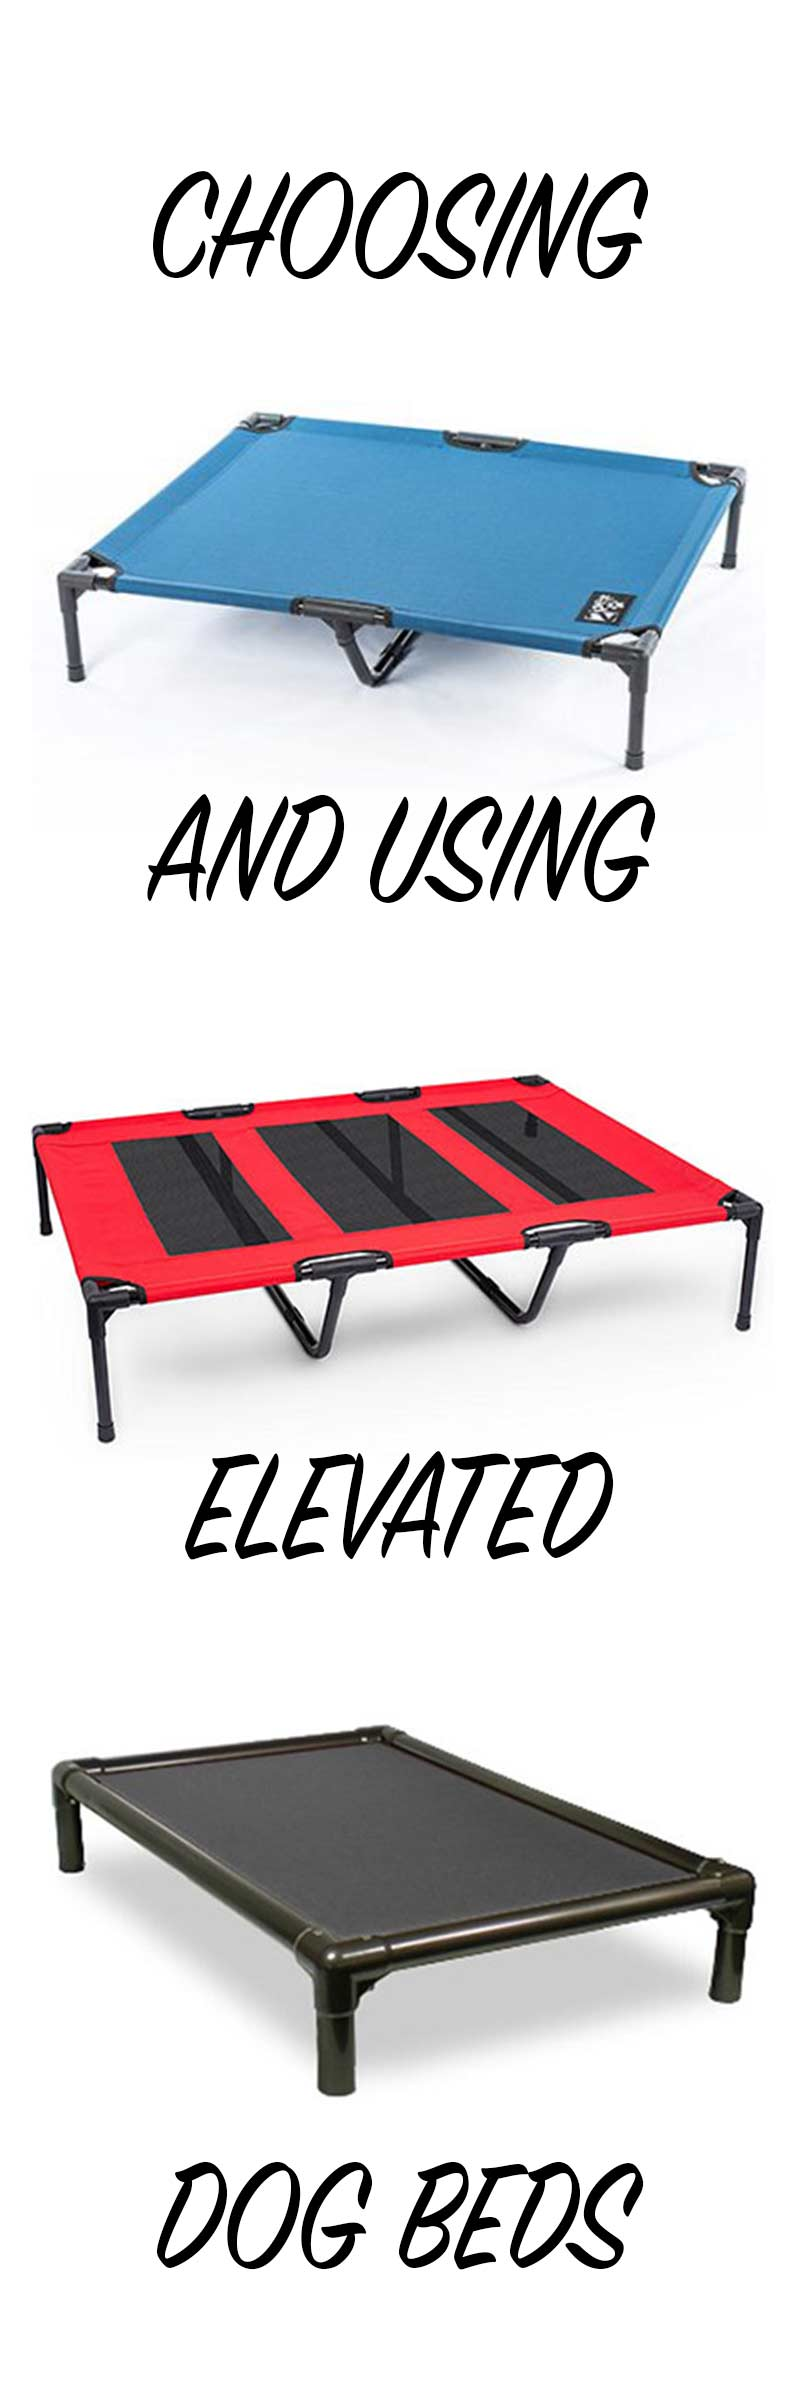 choosing and using a raised dog bed - a personal review